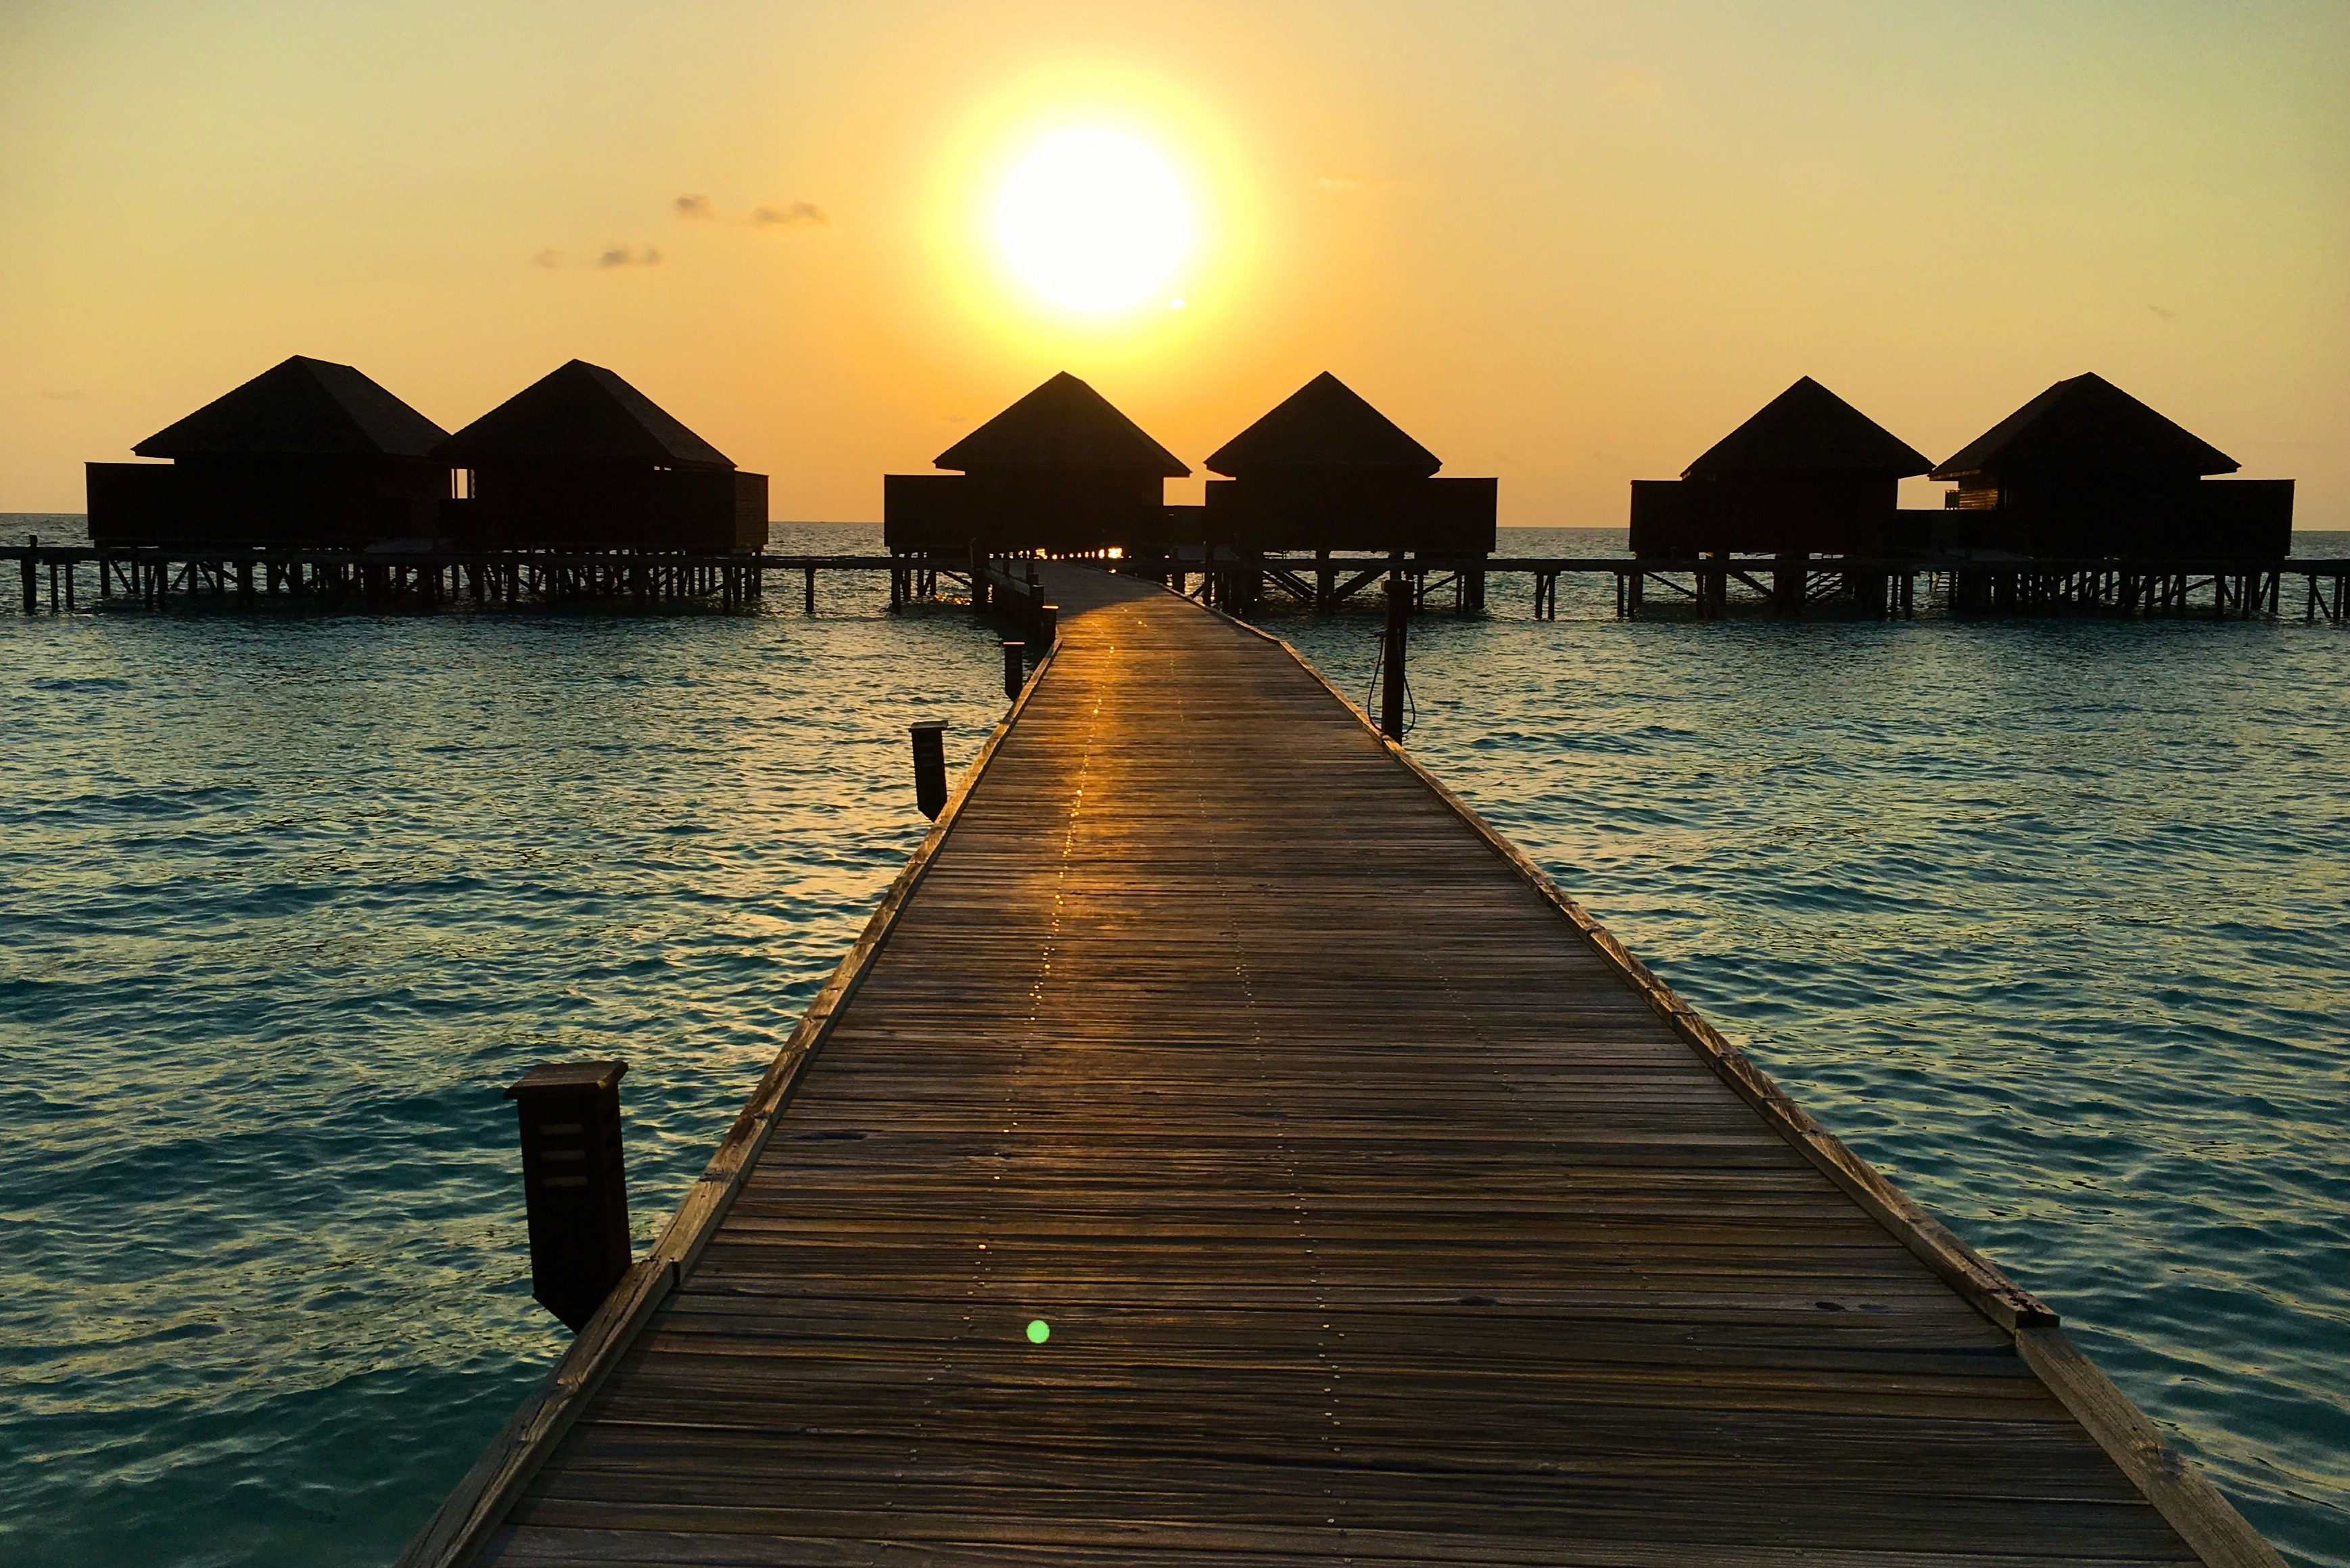 Maldives - Veligandu Island - Sunset